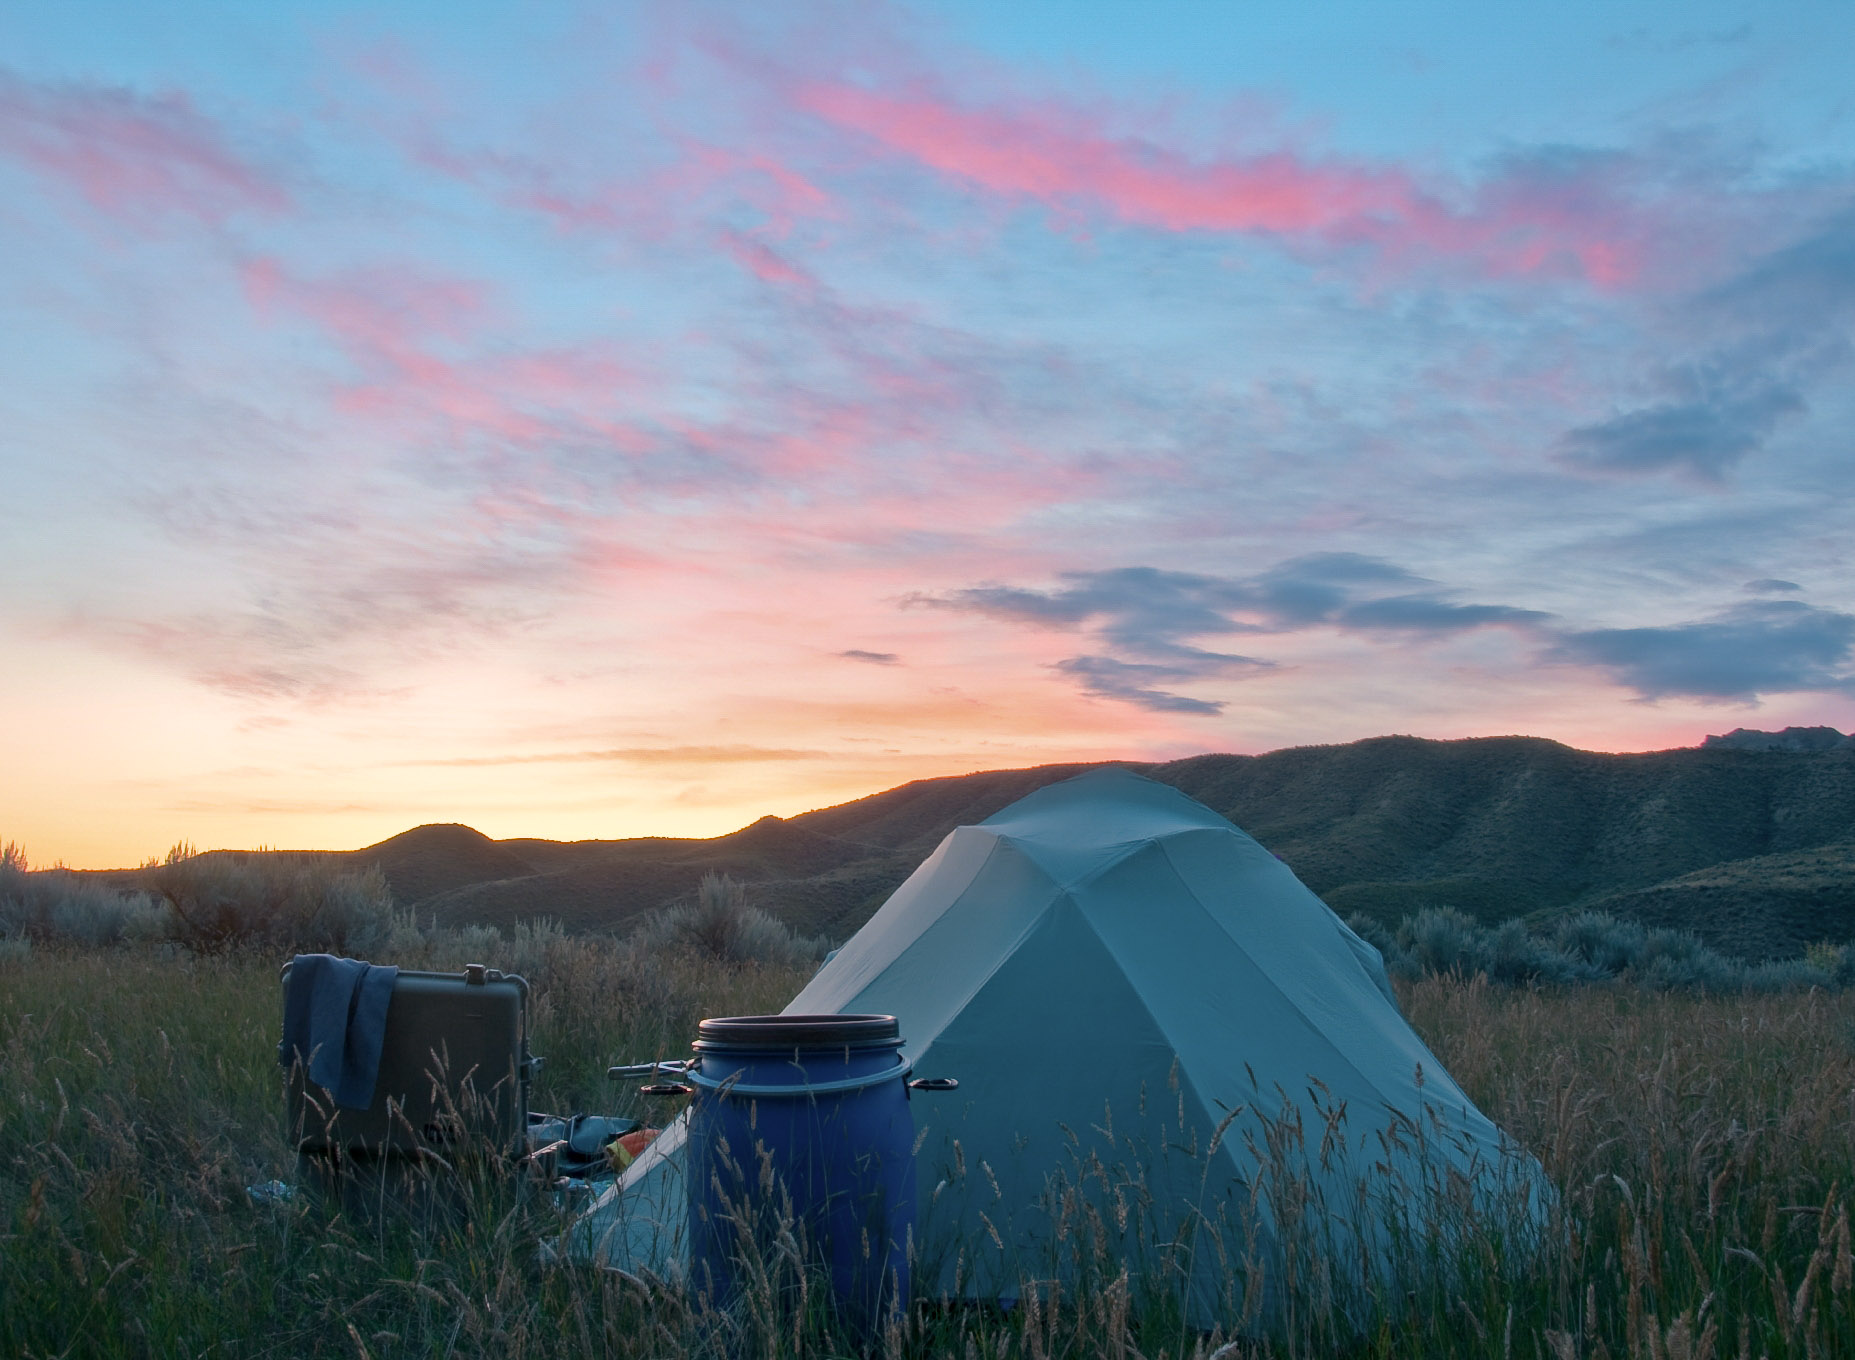 Meadow and tent at sunset - Upper Missouri River Breaks National Monument, Montana